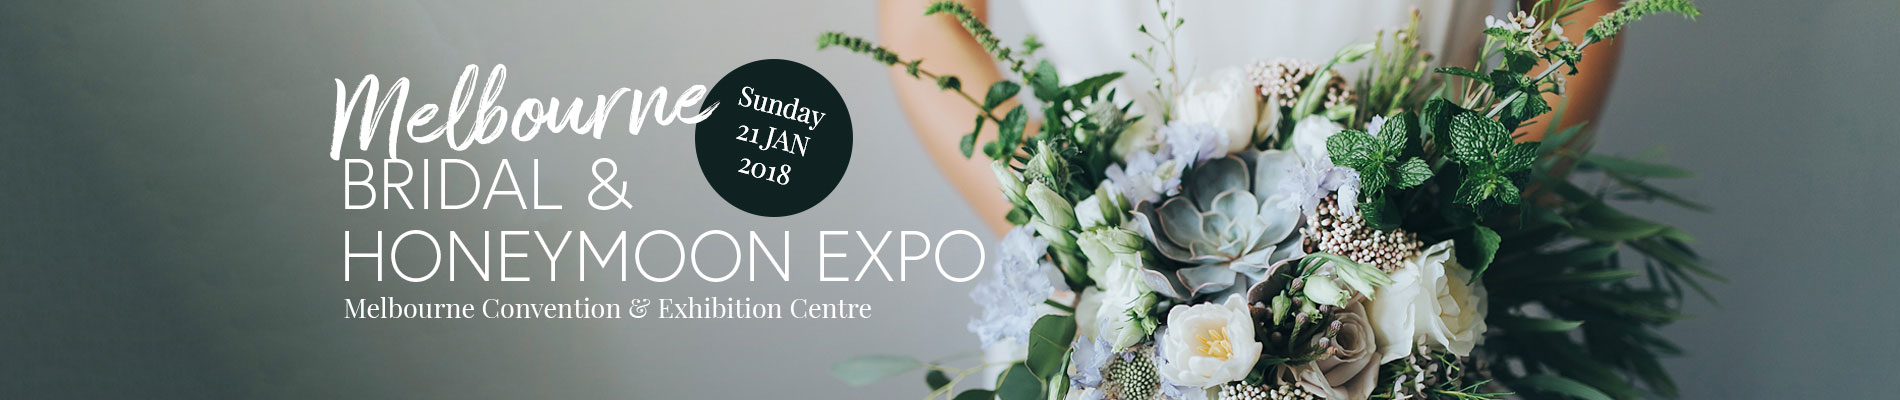 Melbourne Bridal Expo 2018